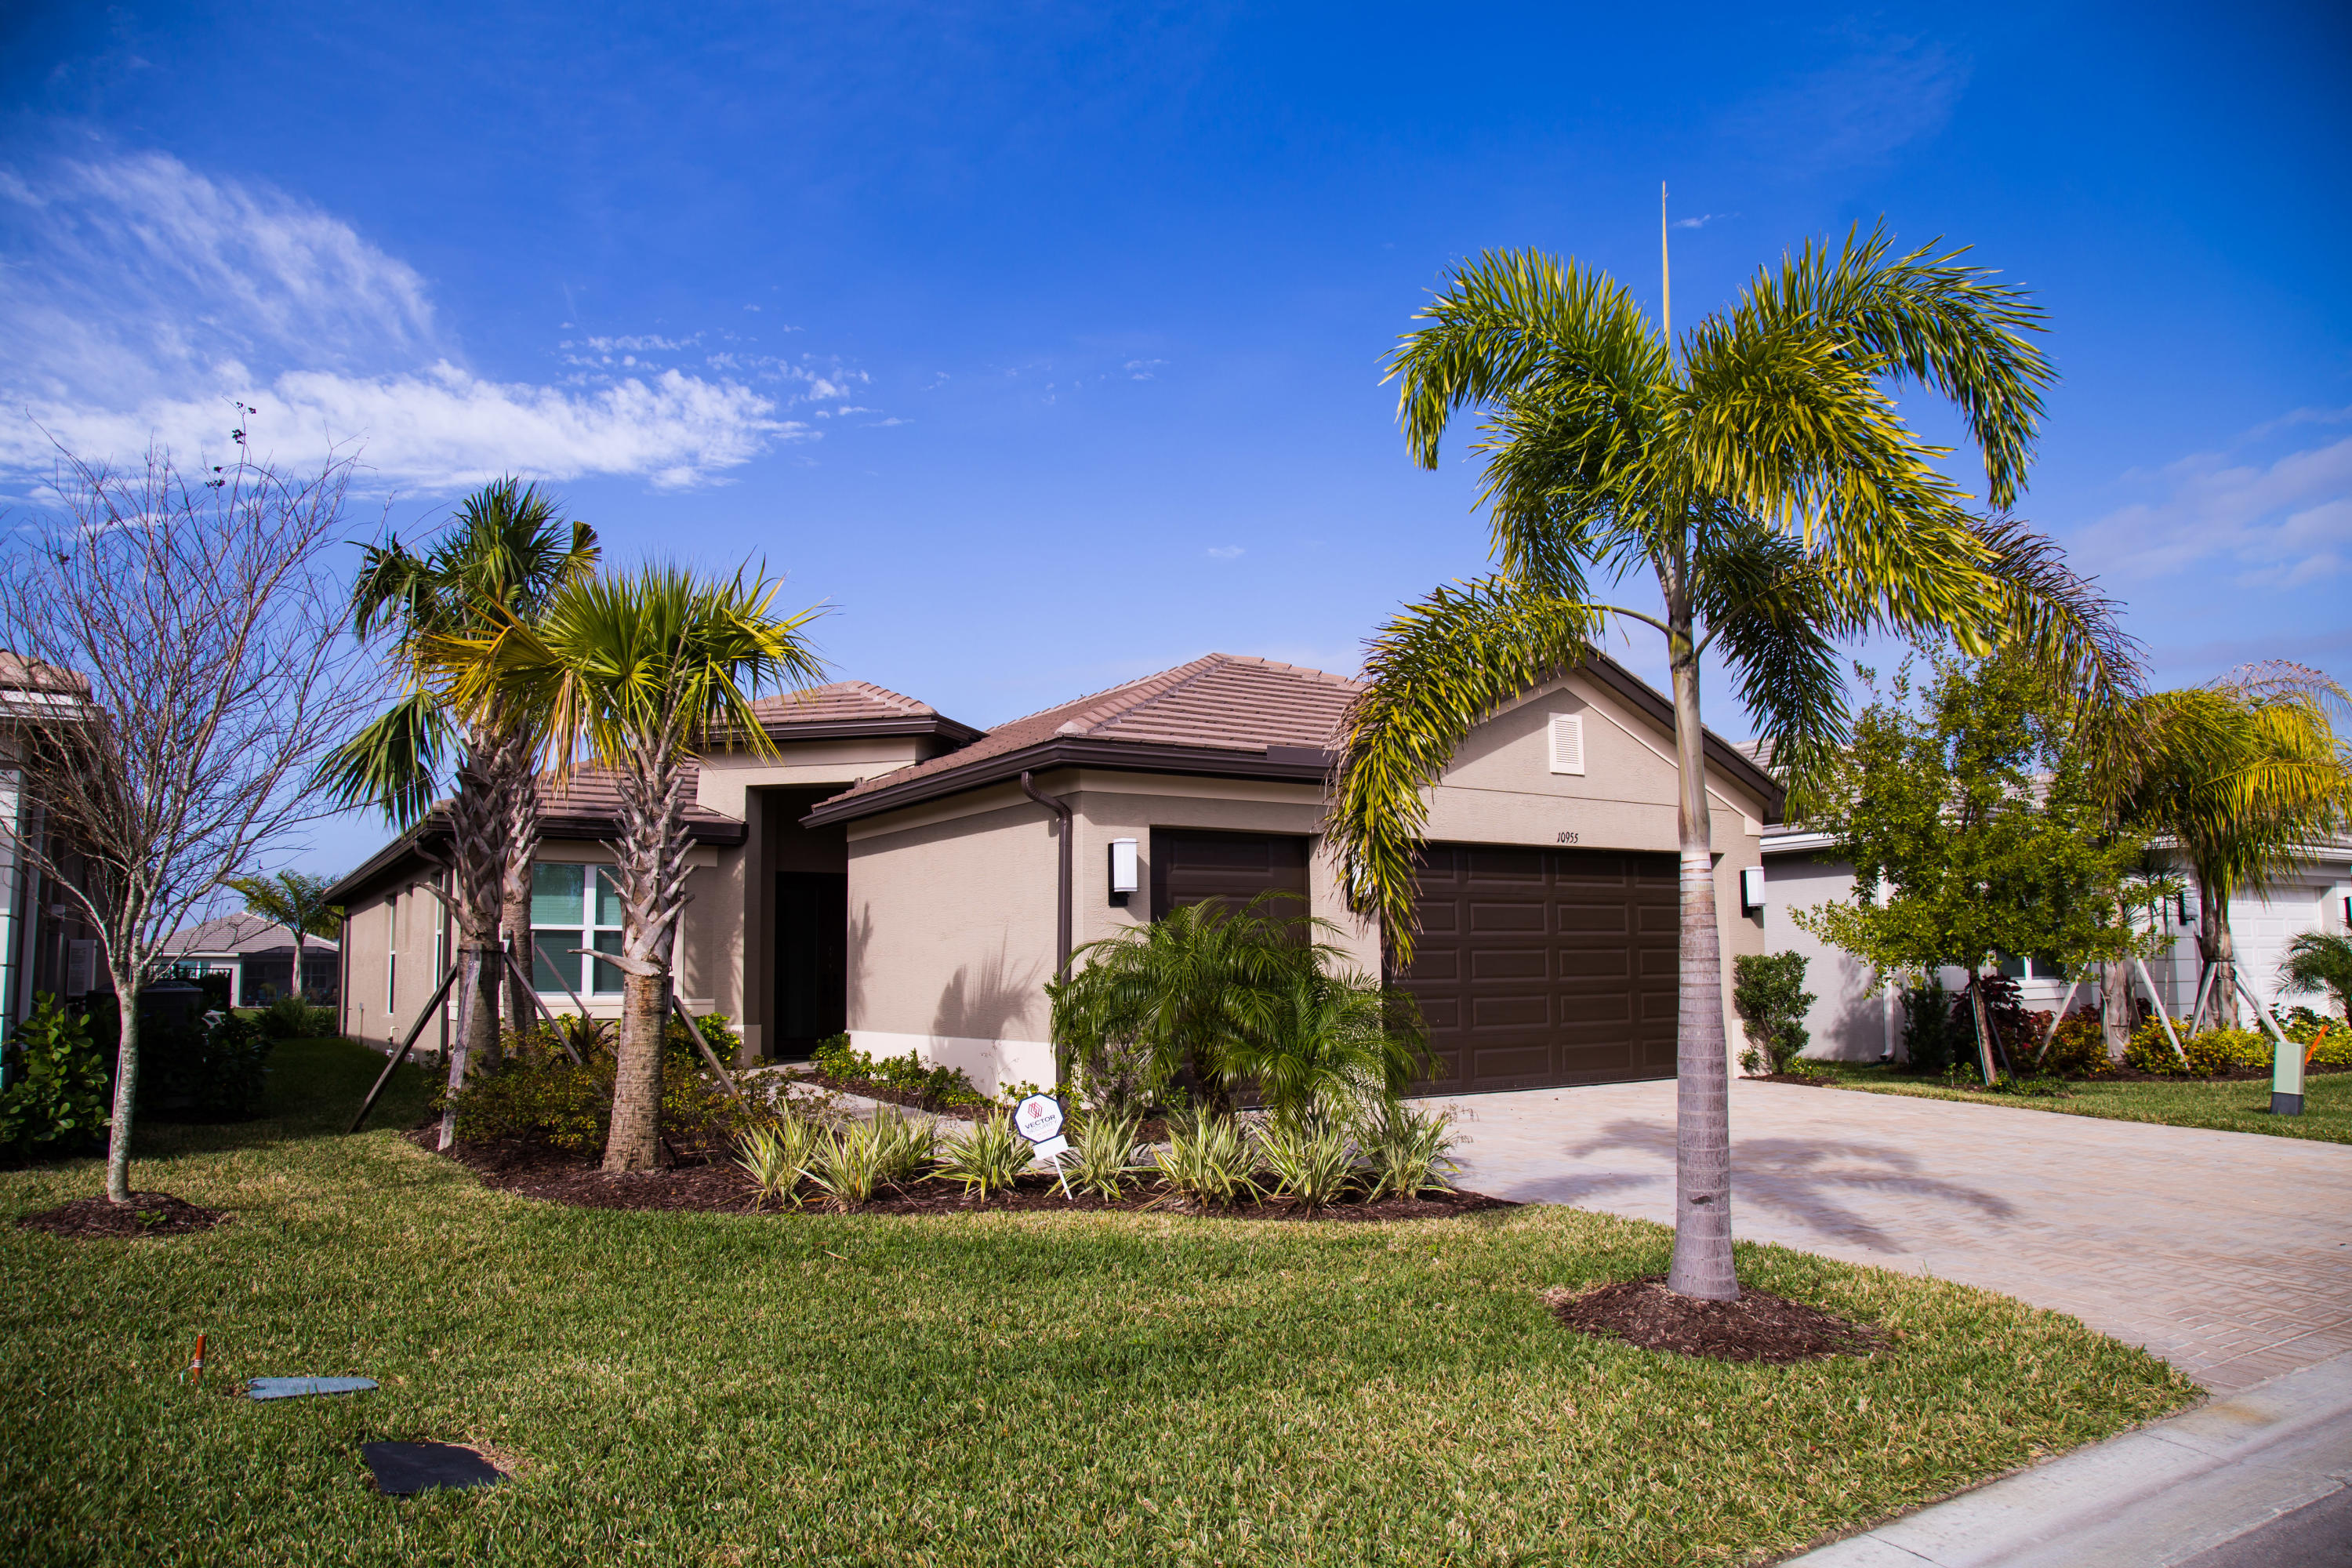 Listing Details for 10955 Sunray Street Sw, Port Saint Lucie, FL 34987